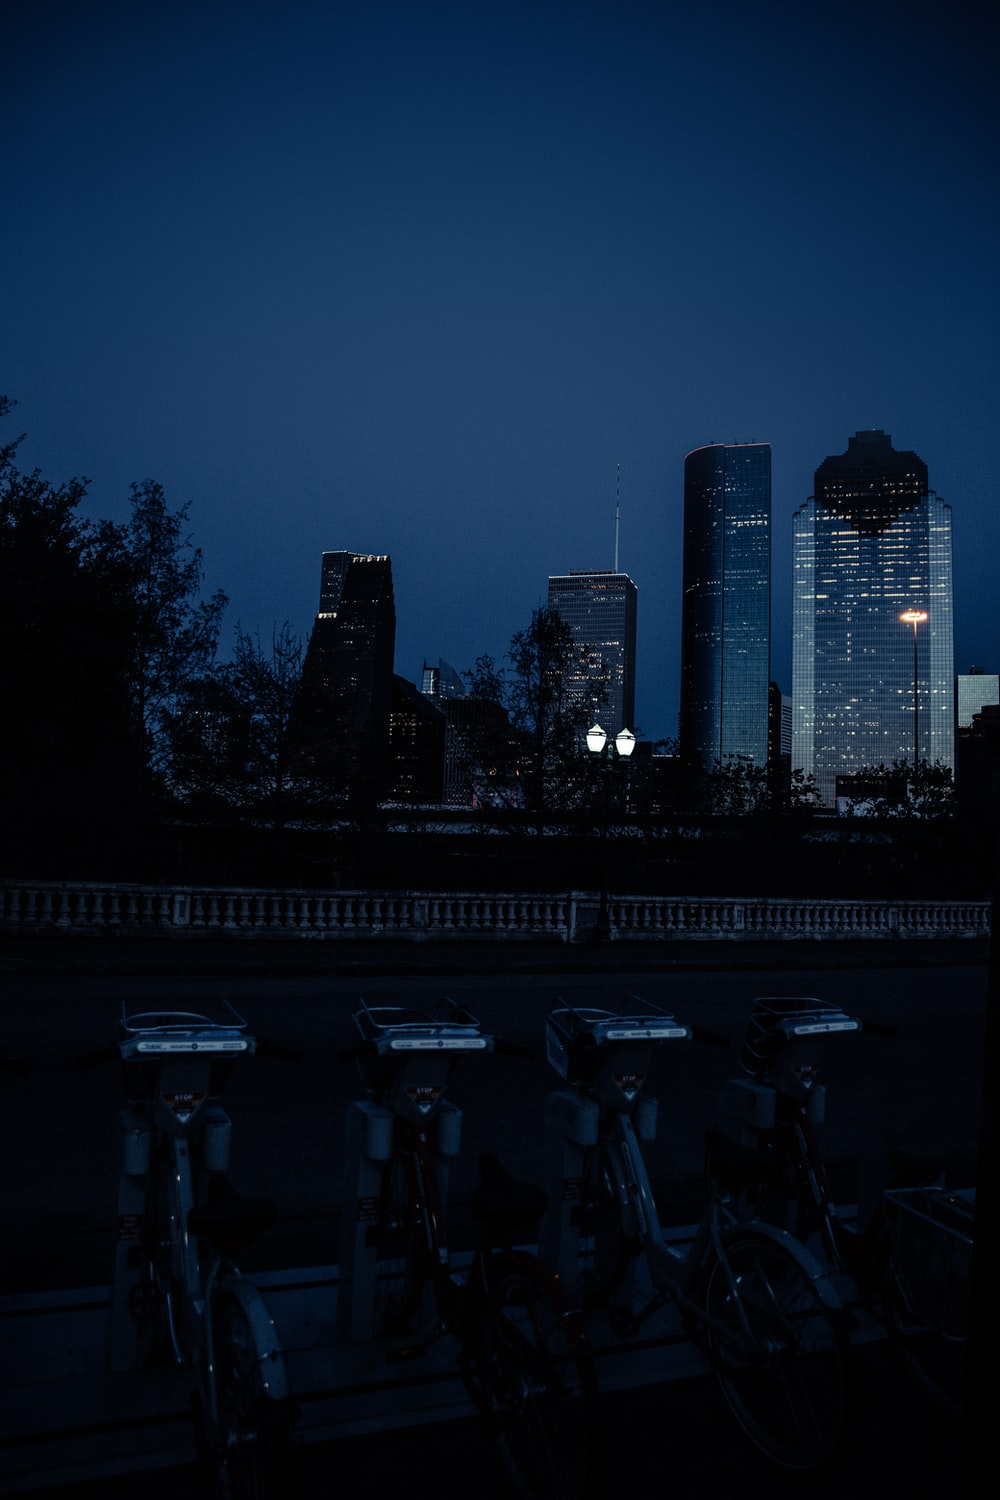 low-light photo of high-rise buildings